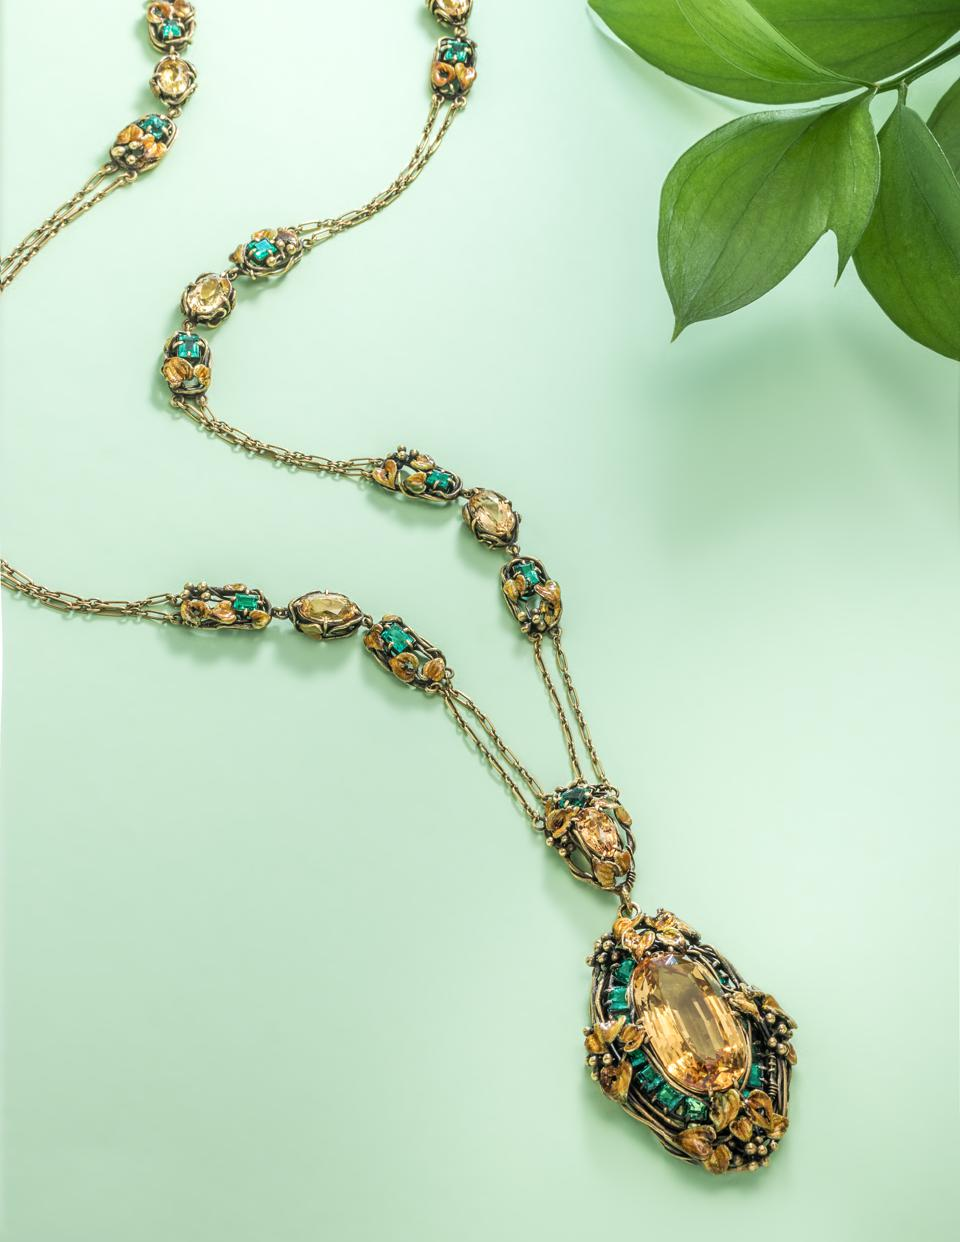 Antique pendant necklace with yellow sapphire and emeralds